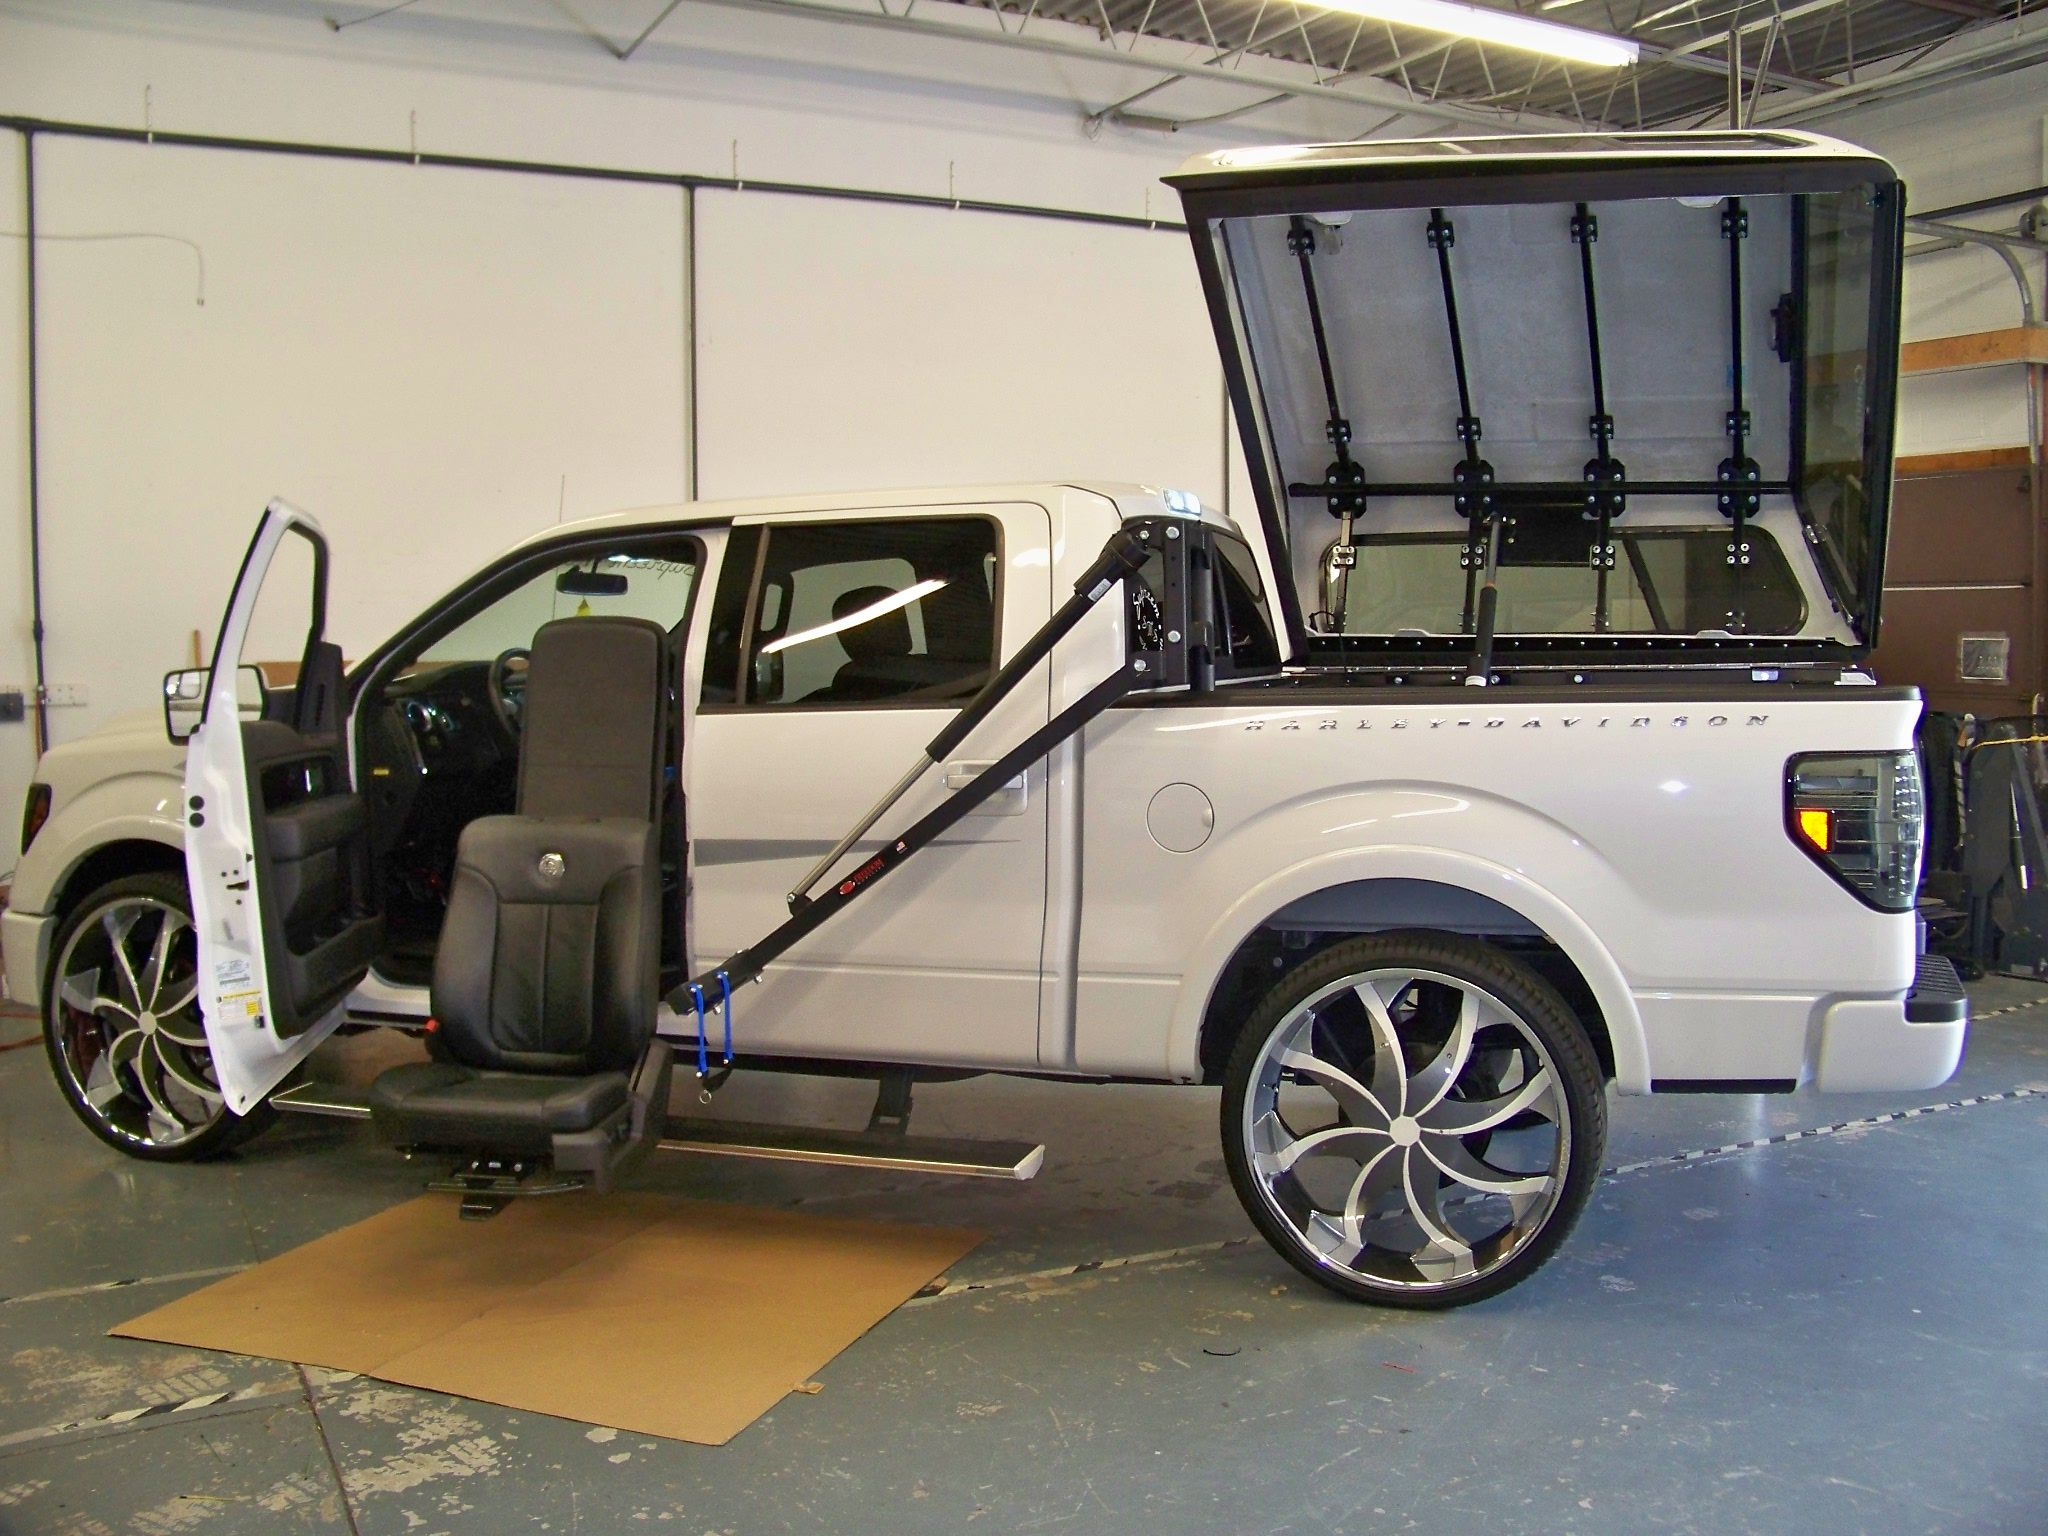 Wheelchair Accessible Pisces Dolphin Massage Chair Ford F 150 Modified For Accessibility Nmeda